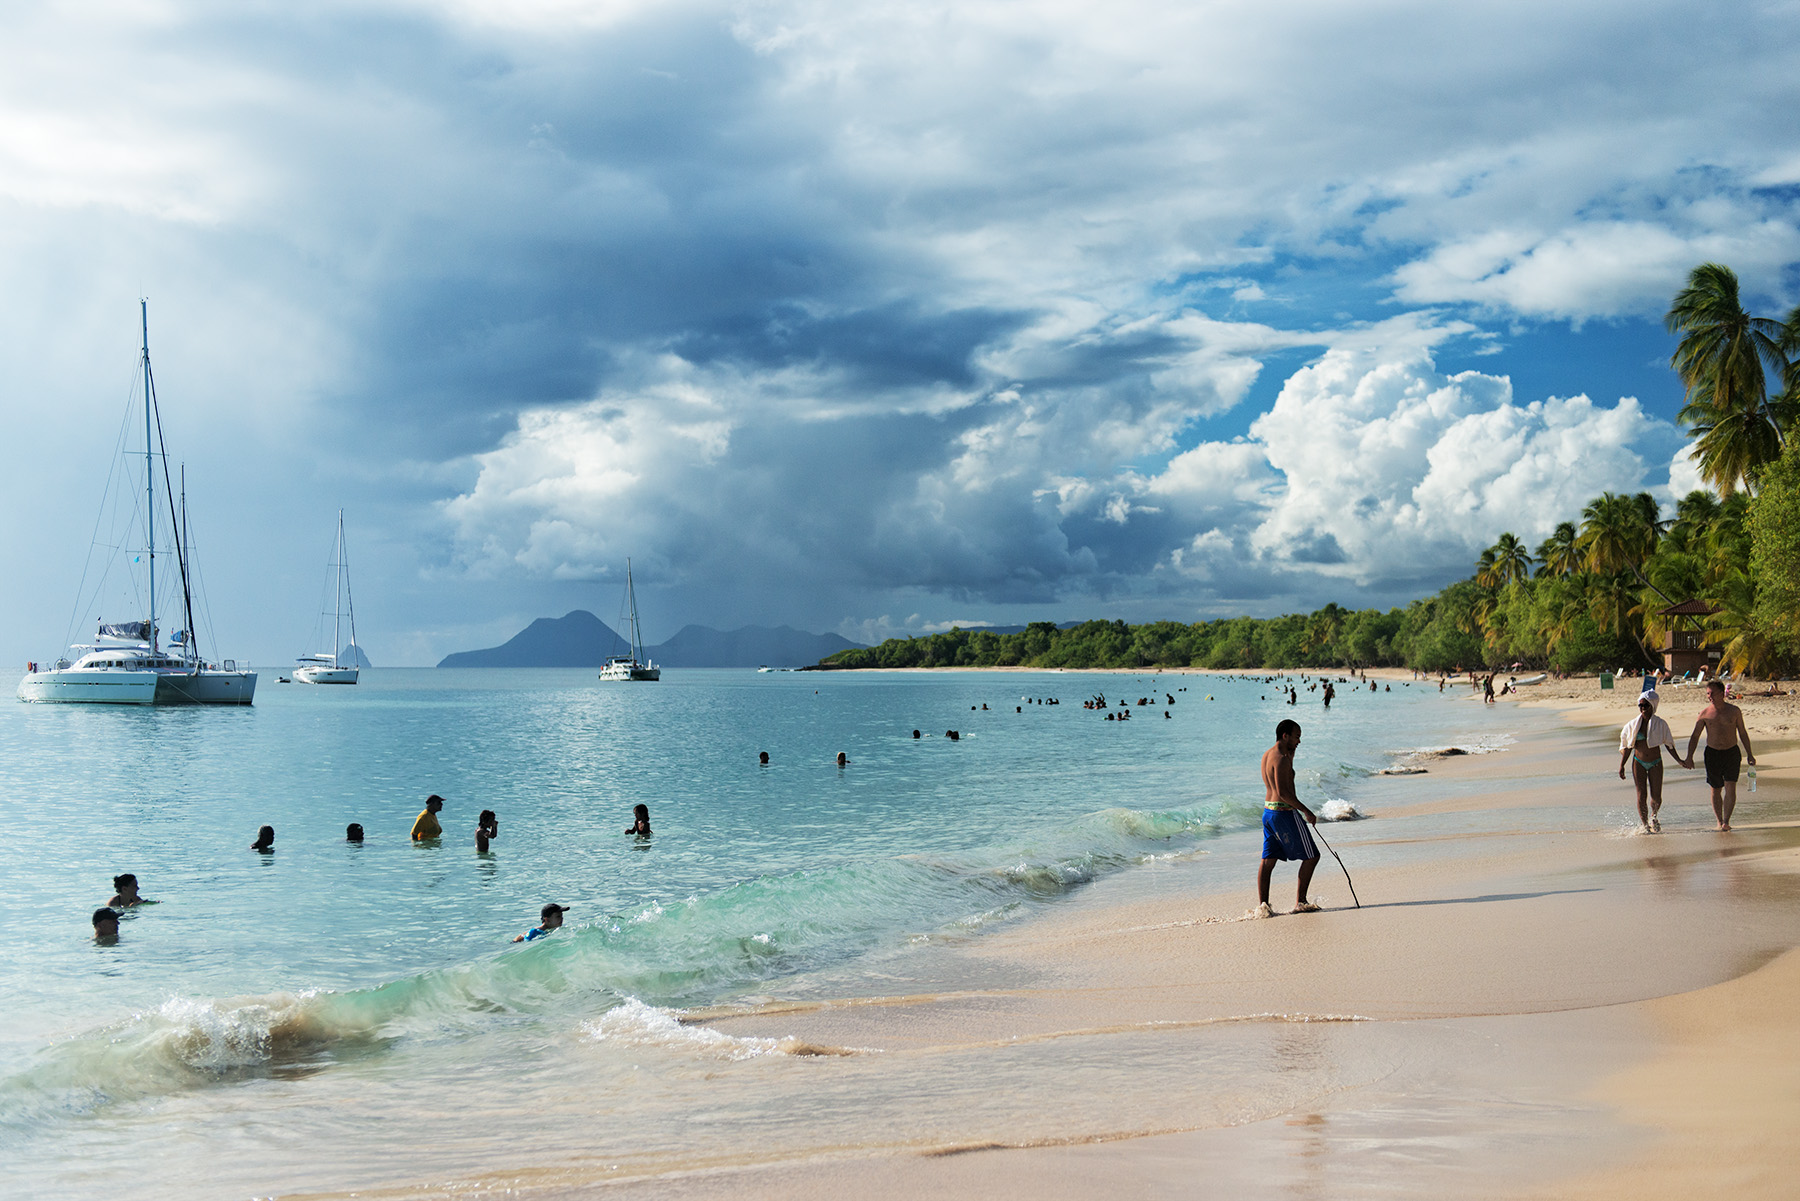 Plage de Saint-Anne beach, Martinique, France